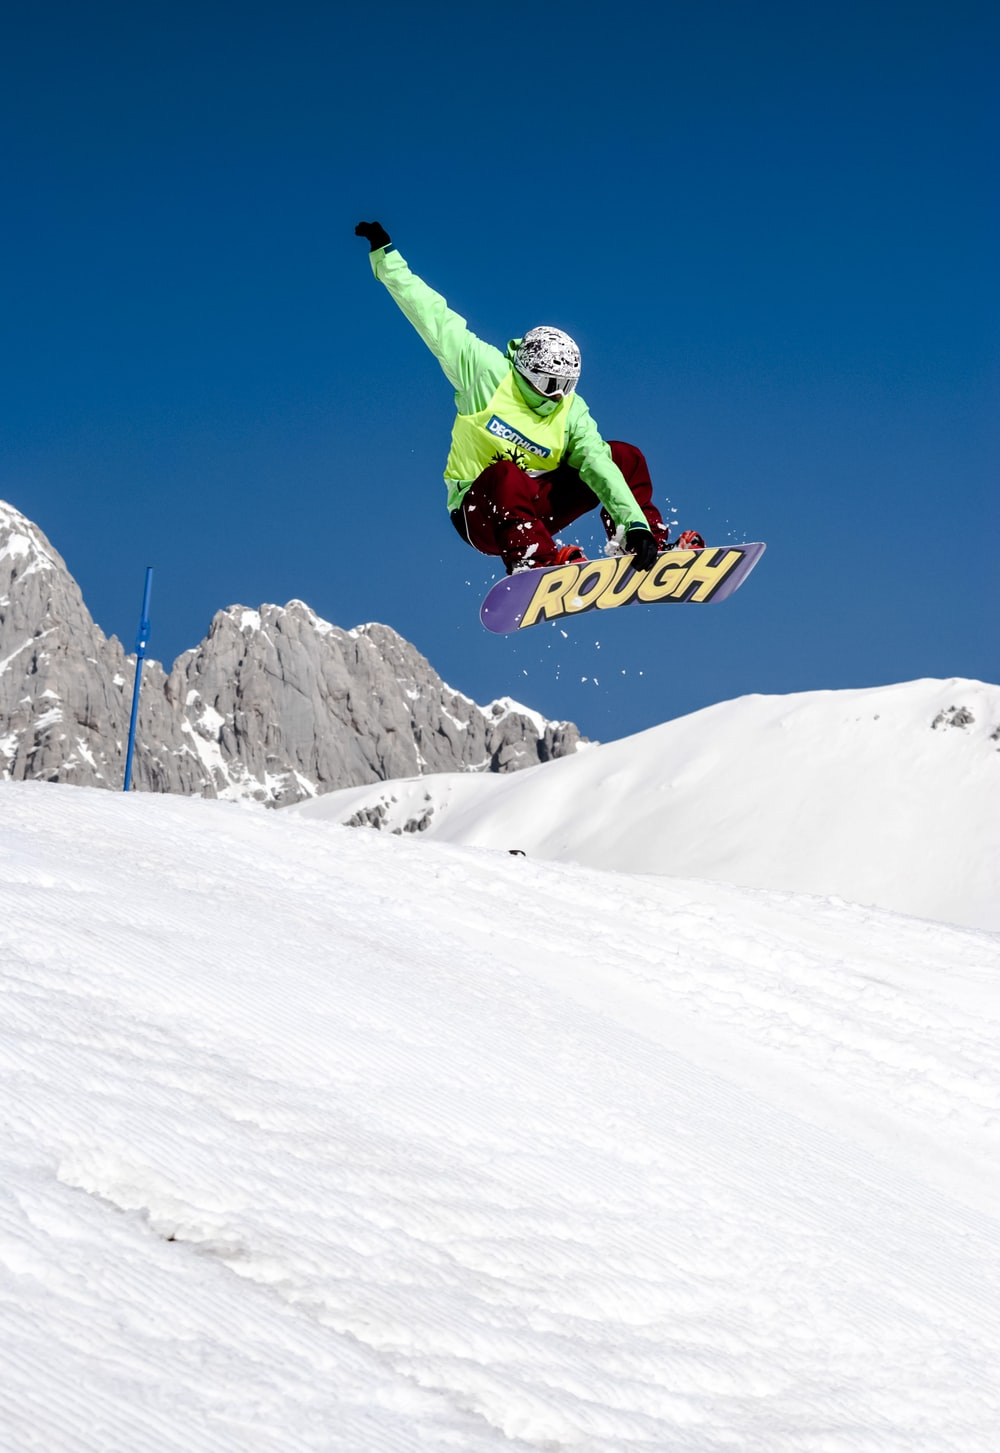 man in green jacket riding snowboard on snow covered mountain during daytime